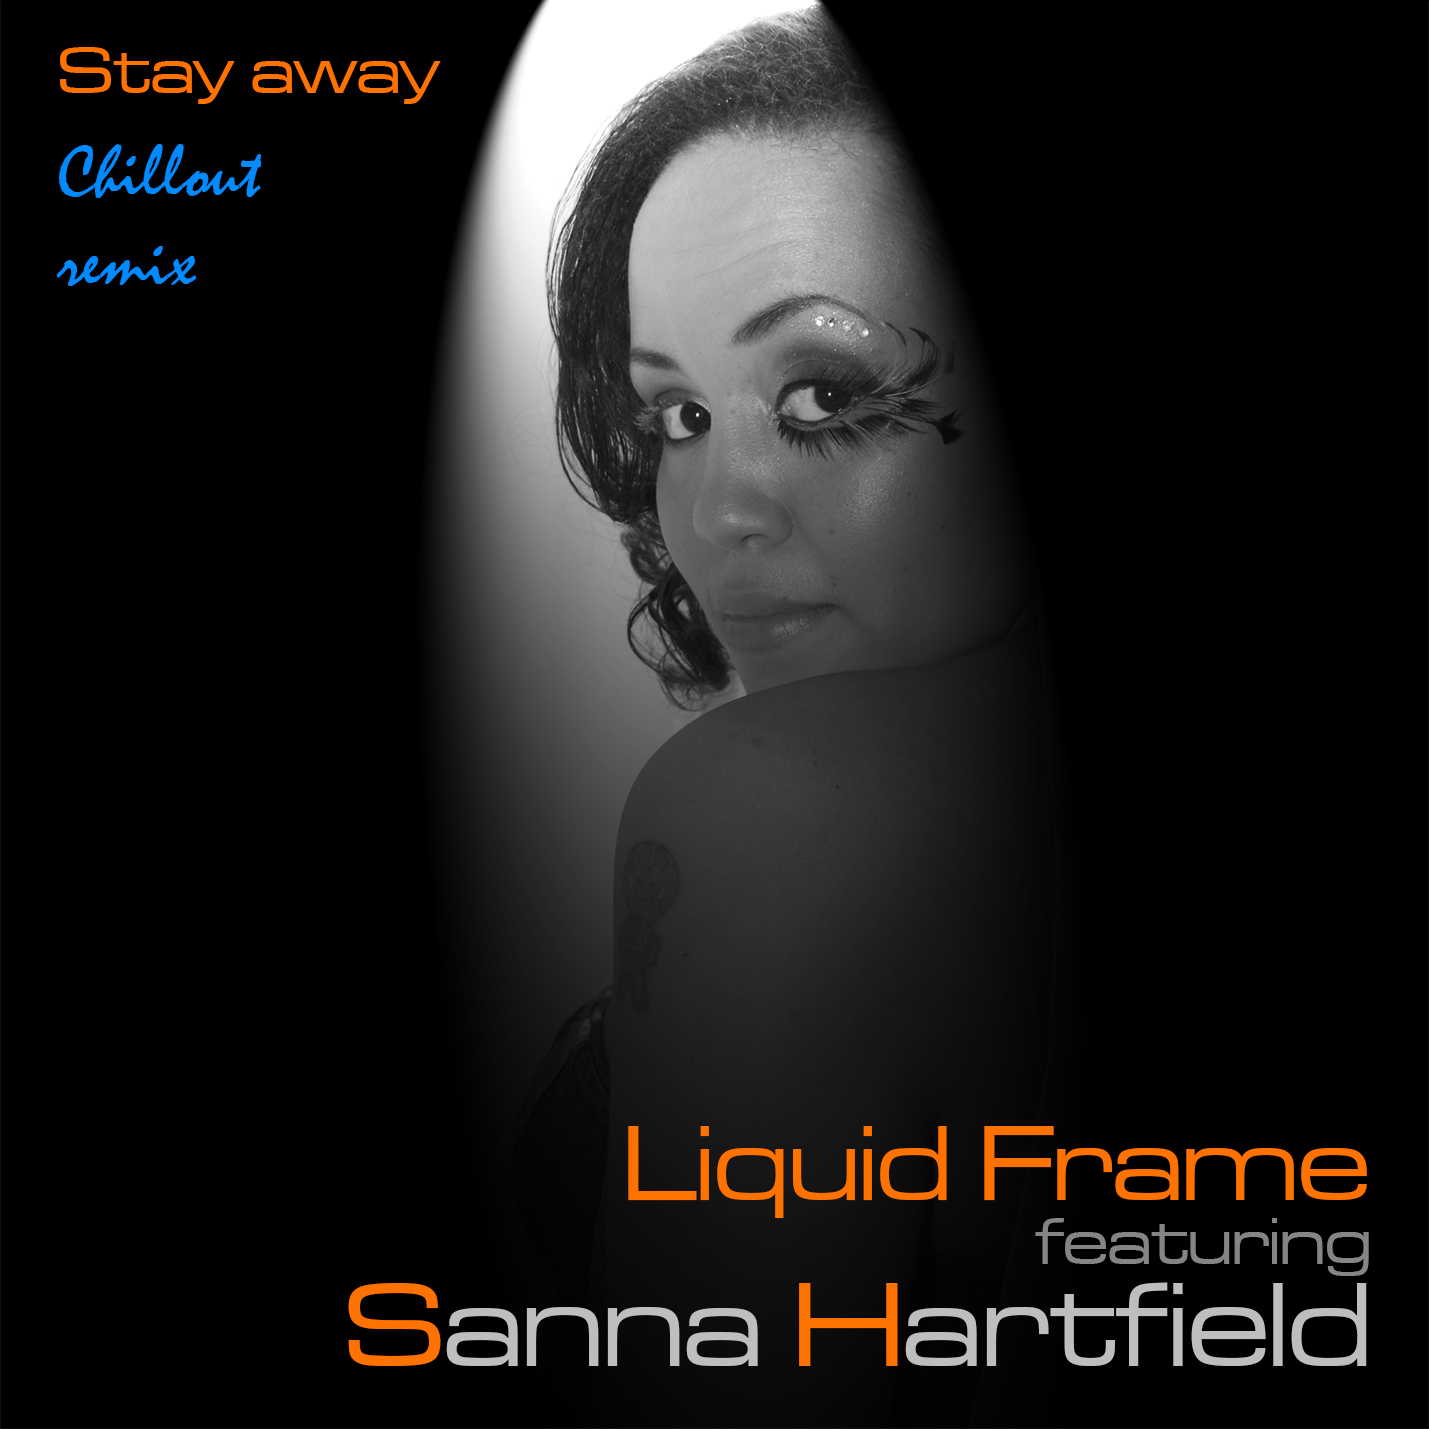 Stay away Sanna Hartfield